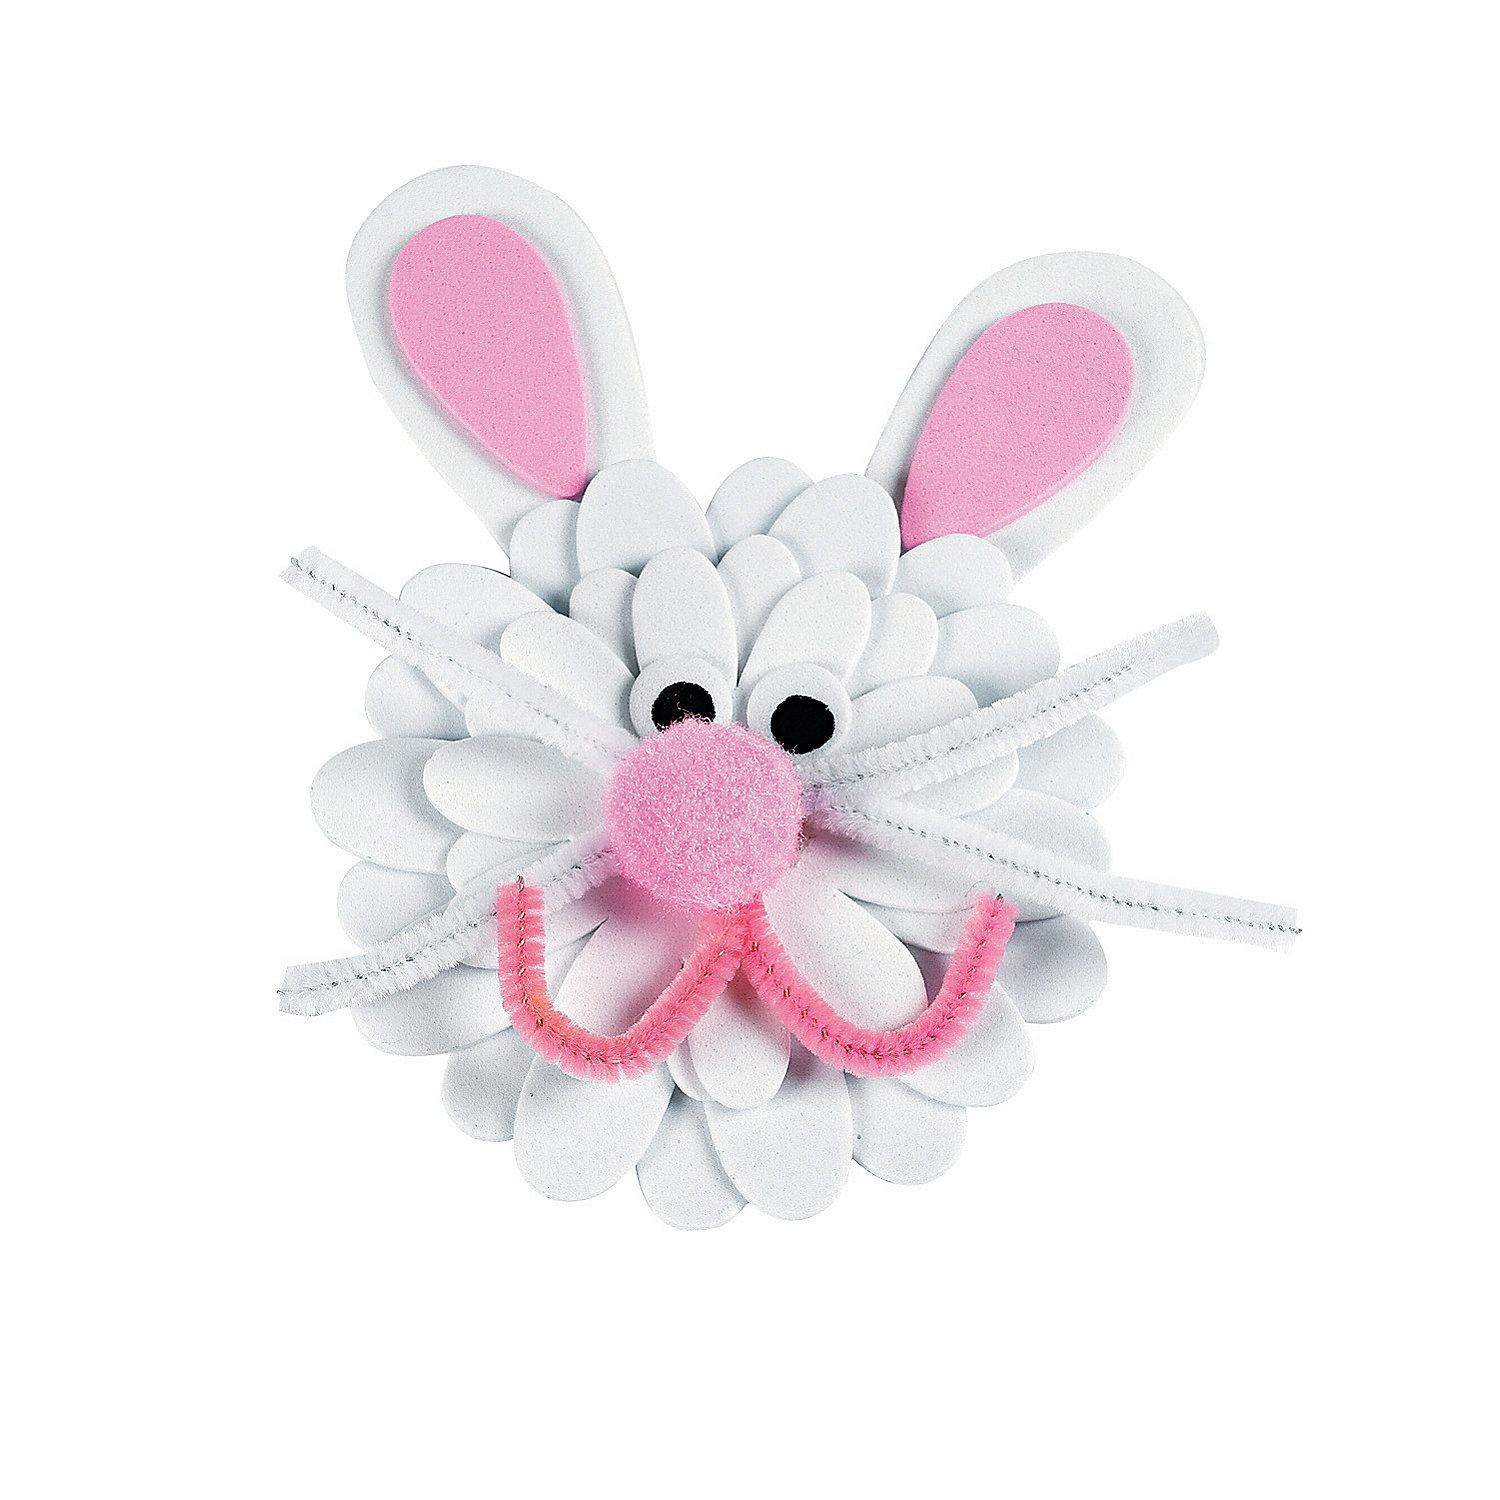 Fun Express Foam Flower Bunny Magnet Craft Kit for Easter Craft Kits Stationary Craft Kits Magnet Easter 12... by Oriental Trading Company